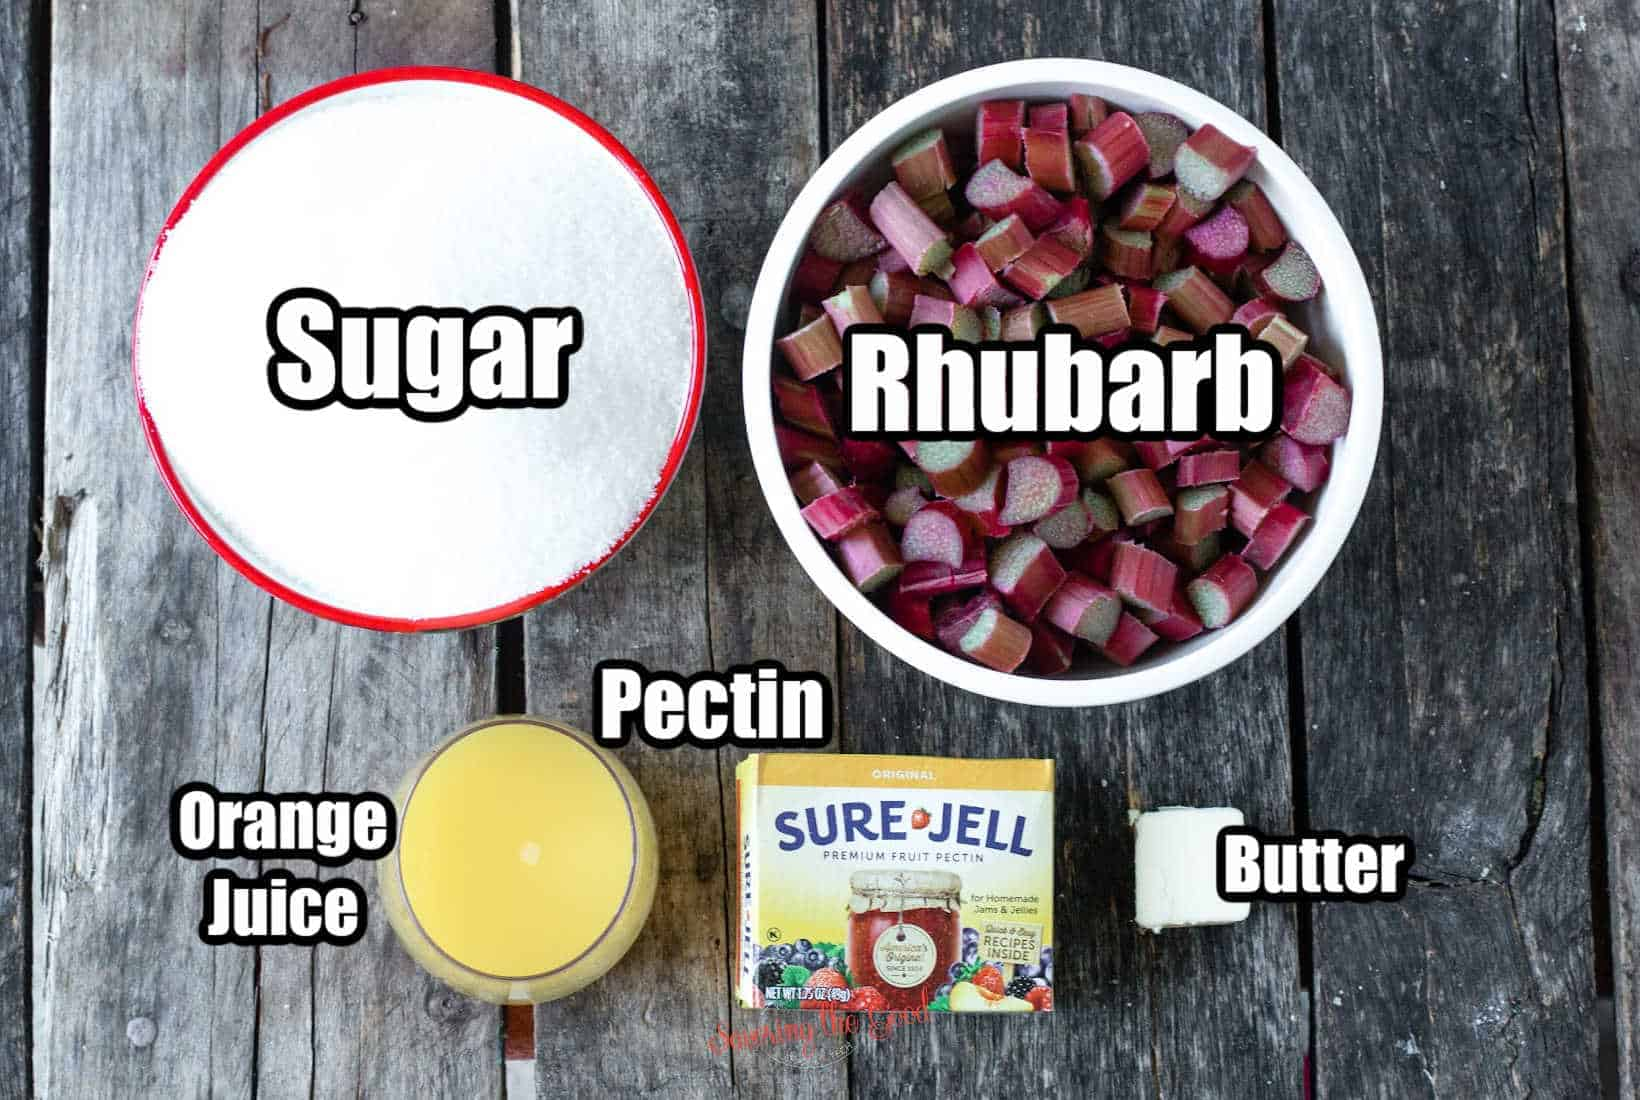 sugar, rhubarb, orange juice, pectin, butter, in bowls with text overlay labeling the ingredients